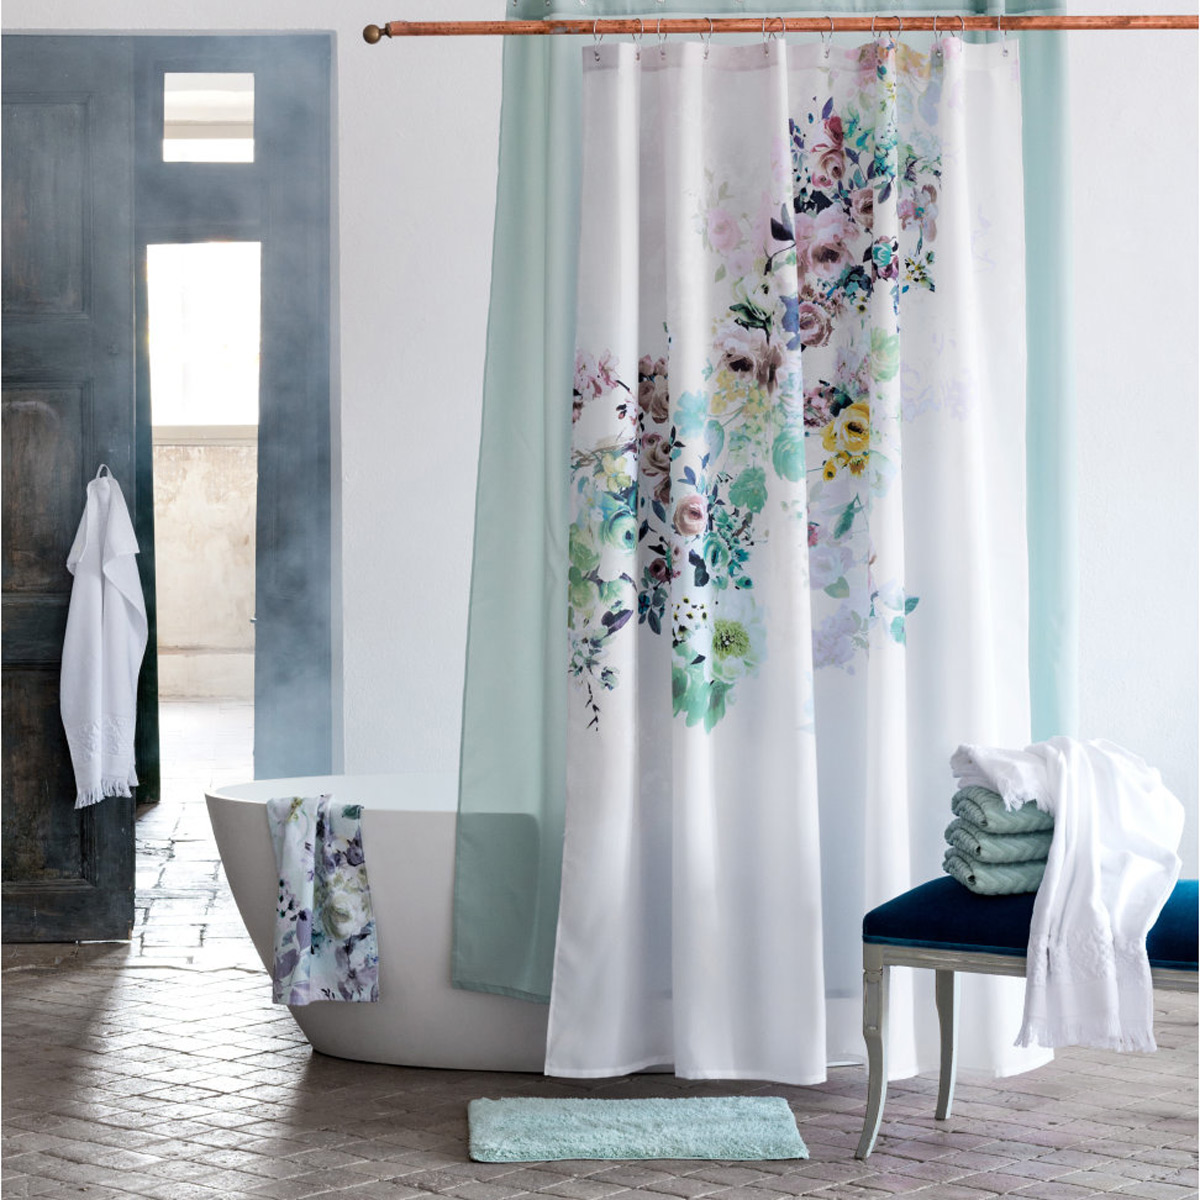 10 amazing shower rooms dream home inspiration good for How often should you change your shower curtain